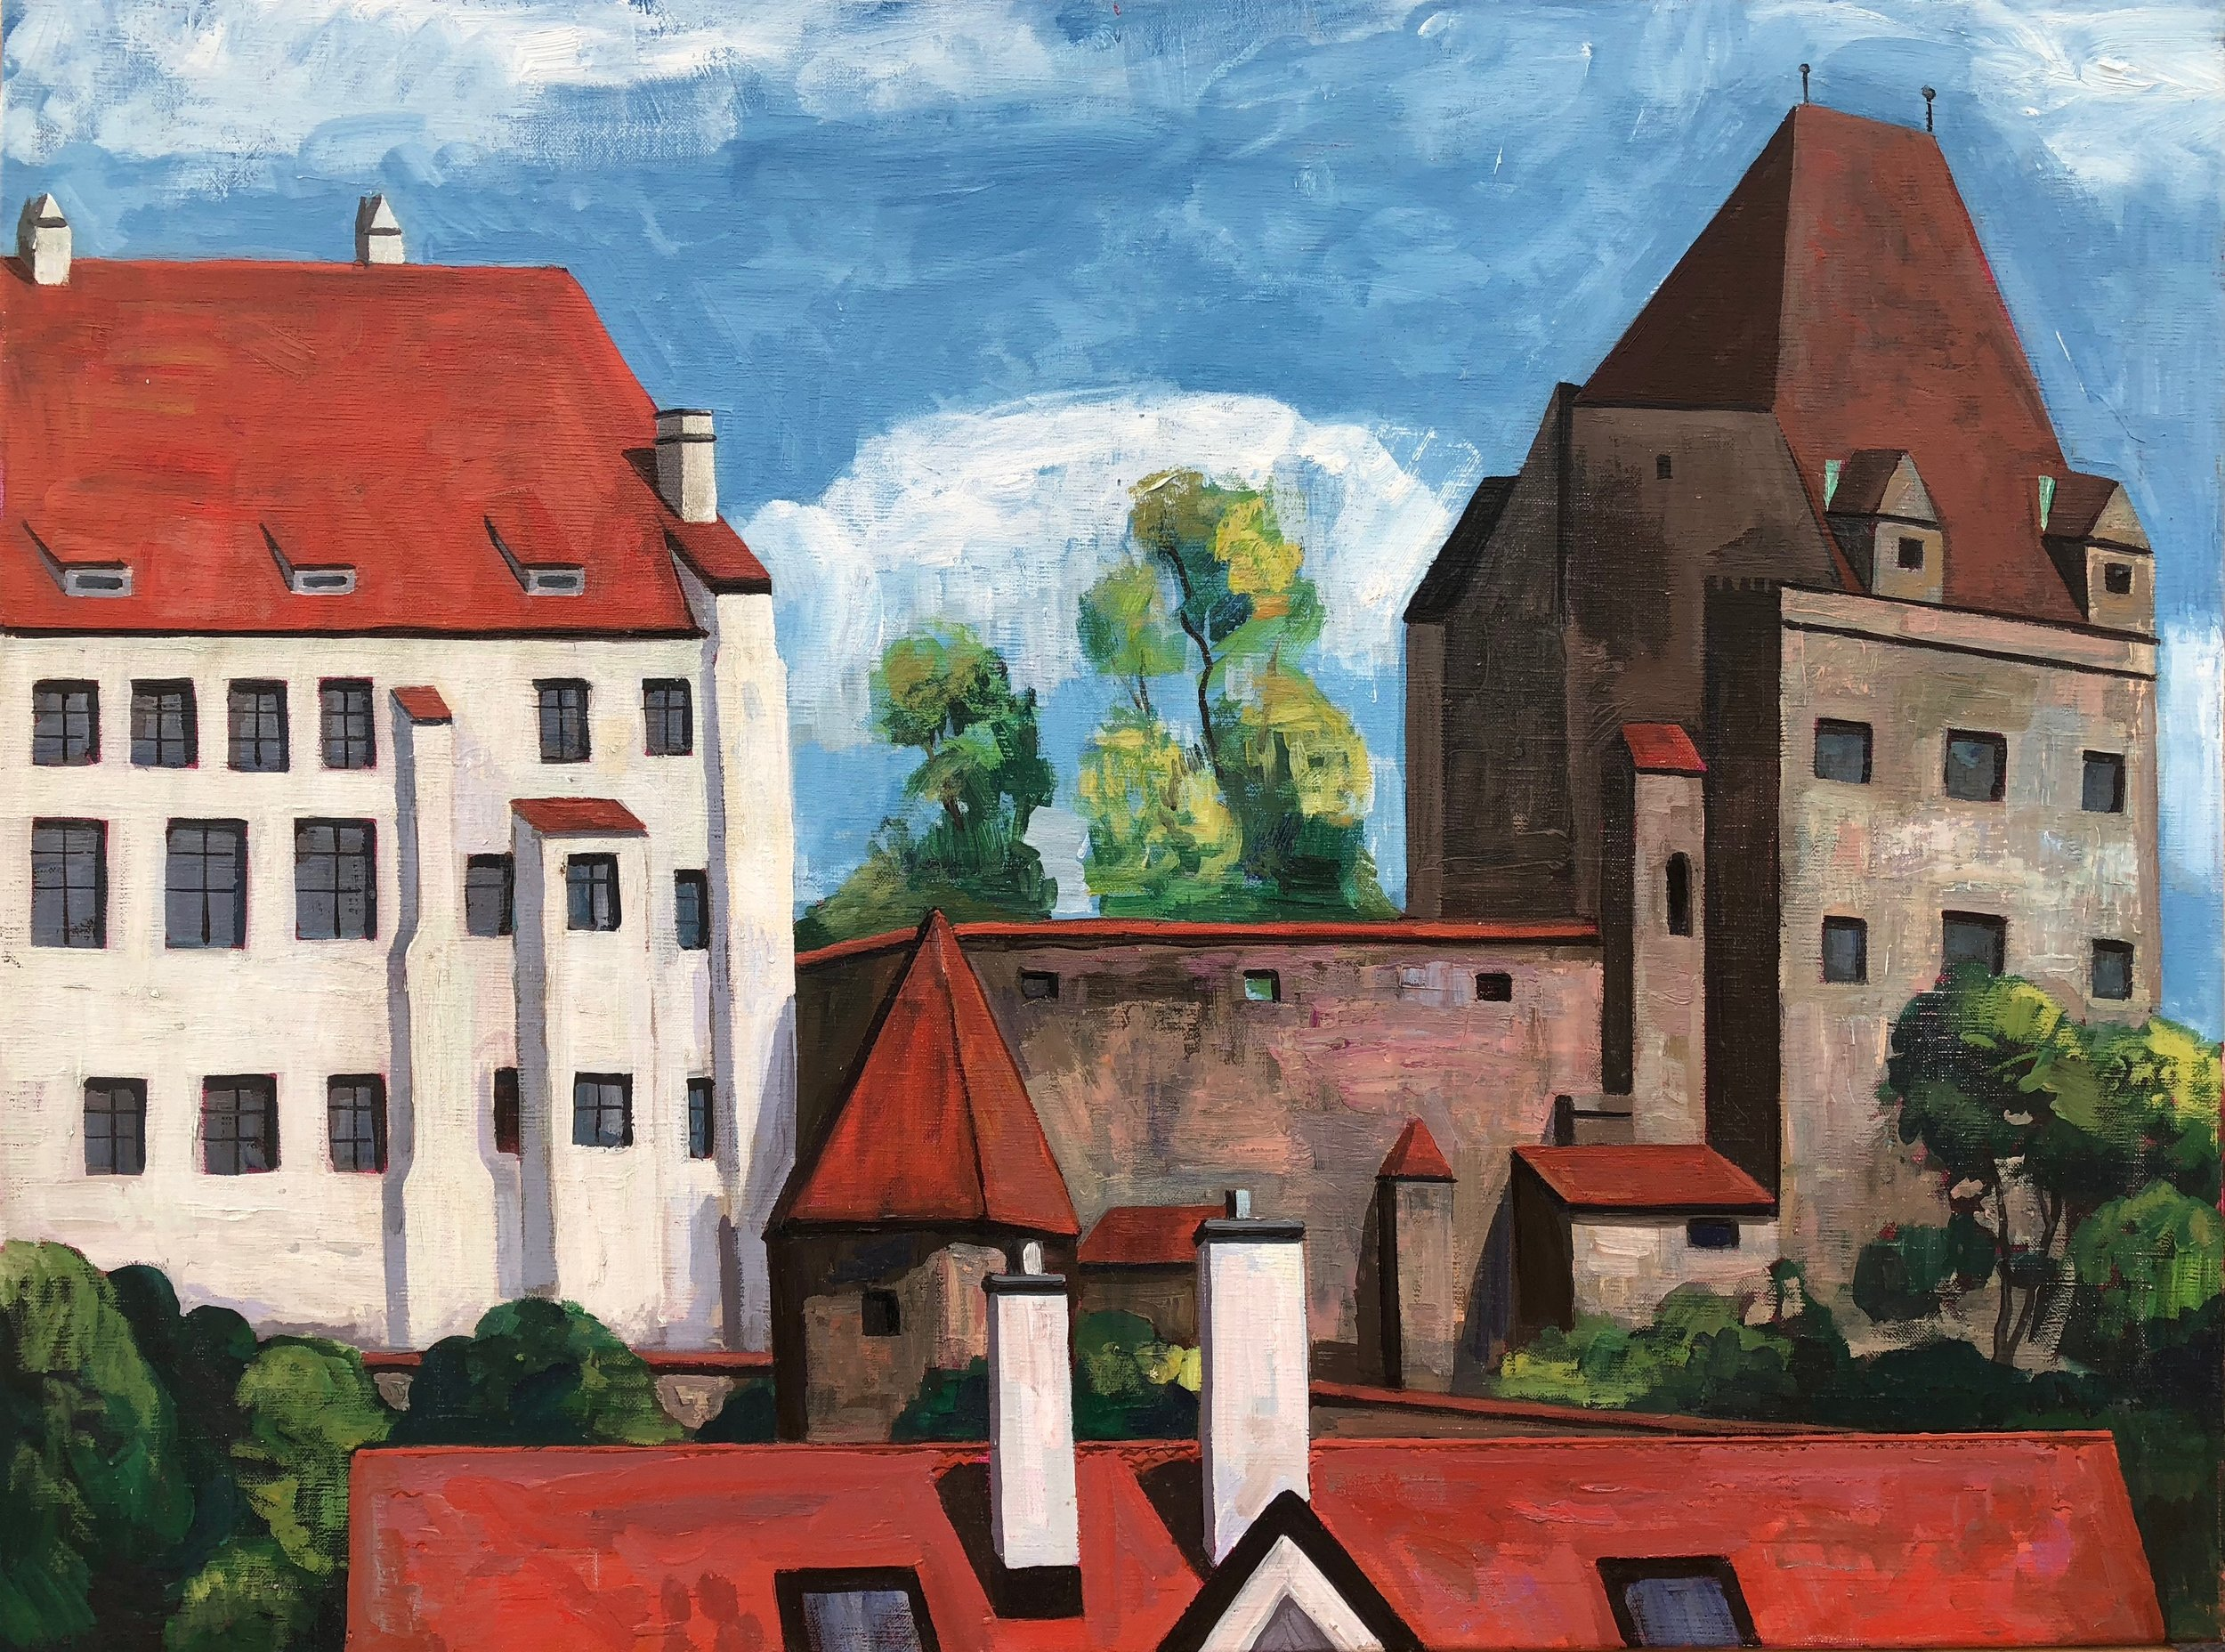 The Castle, Landshut Bavaria, 40x60cm, oil on linen, 2018